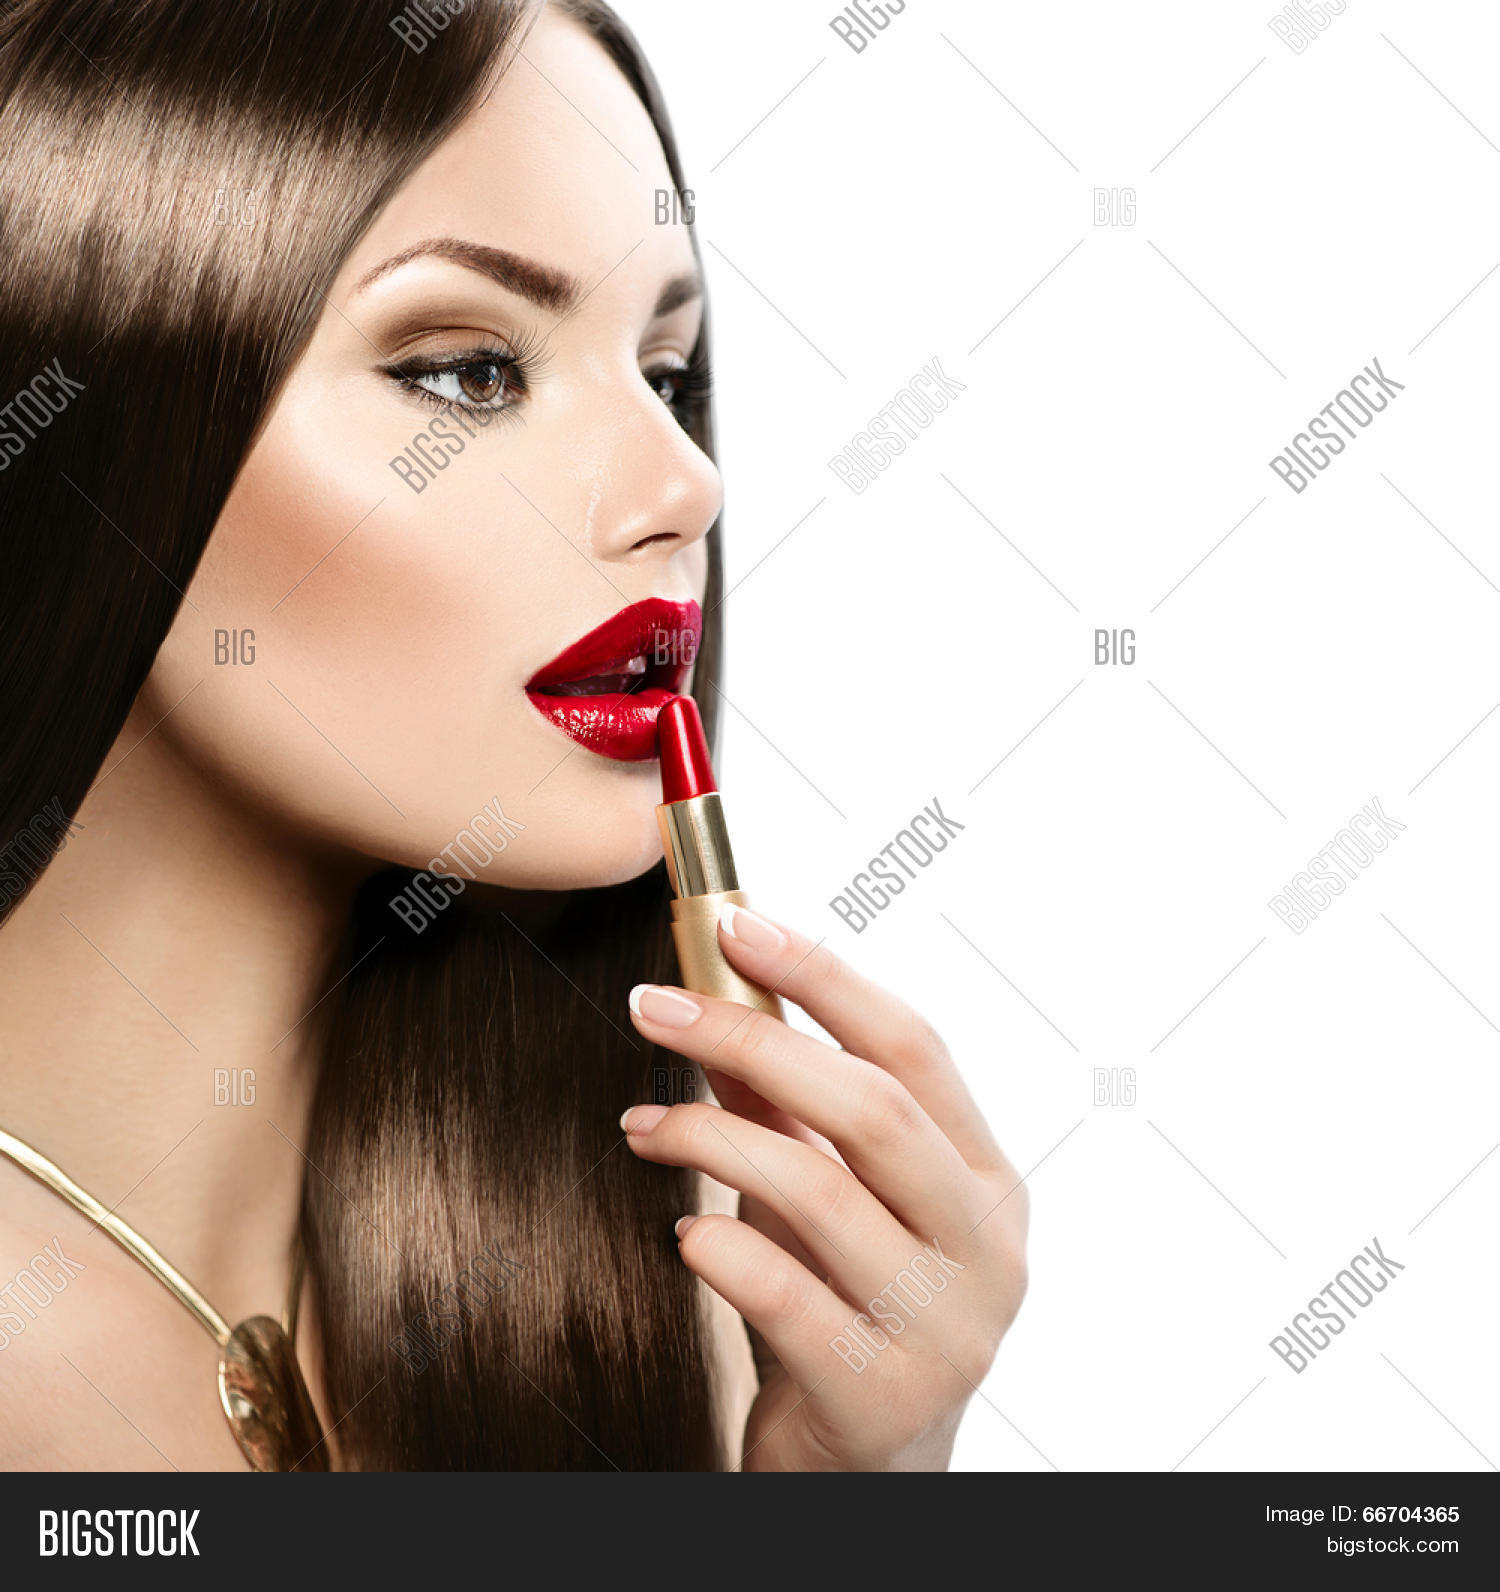 Sexy women with lipstick on